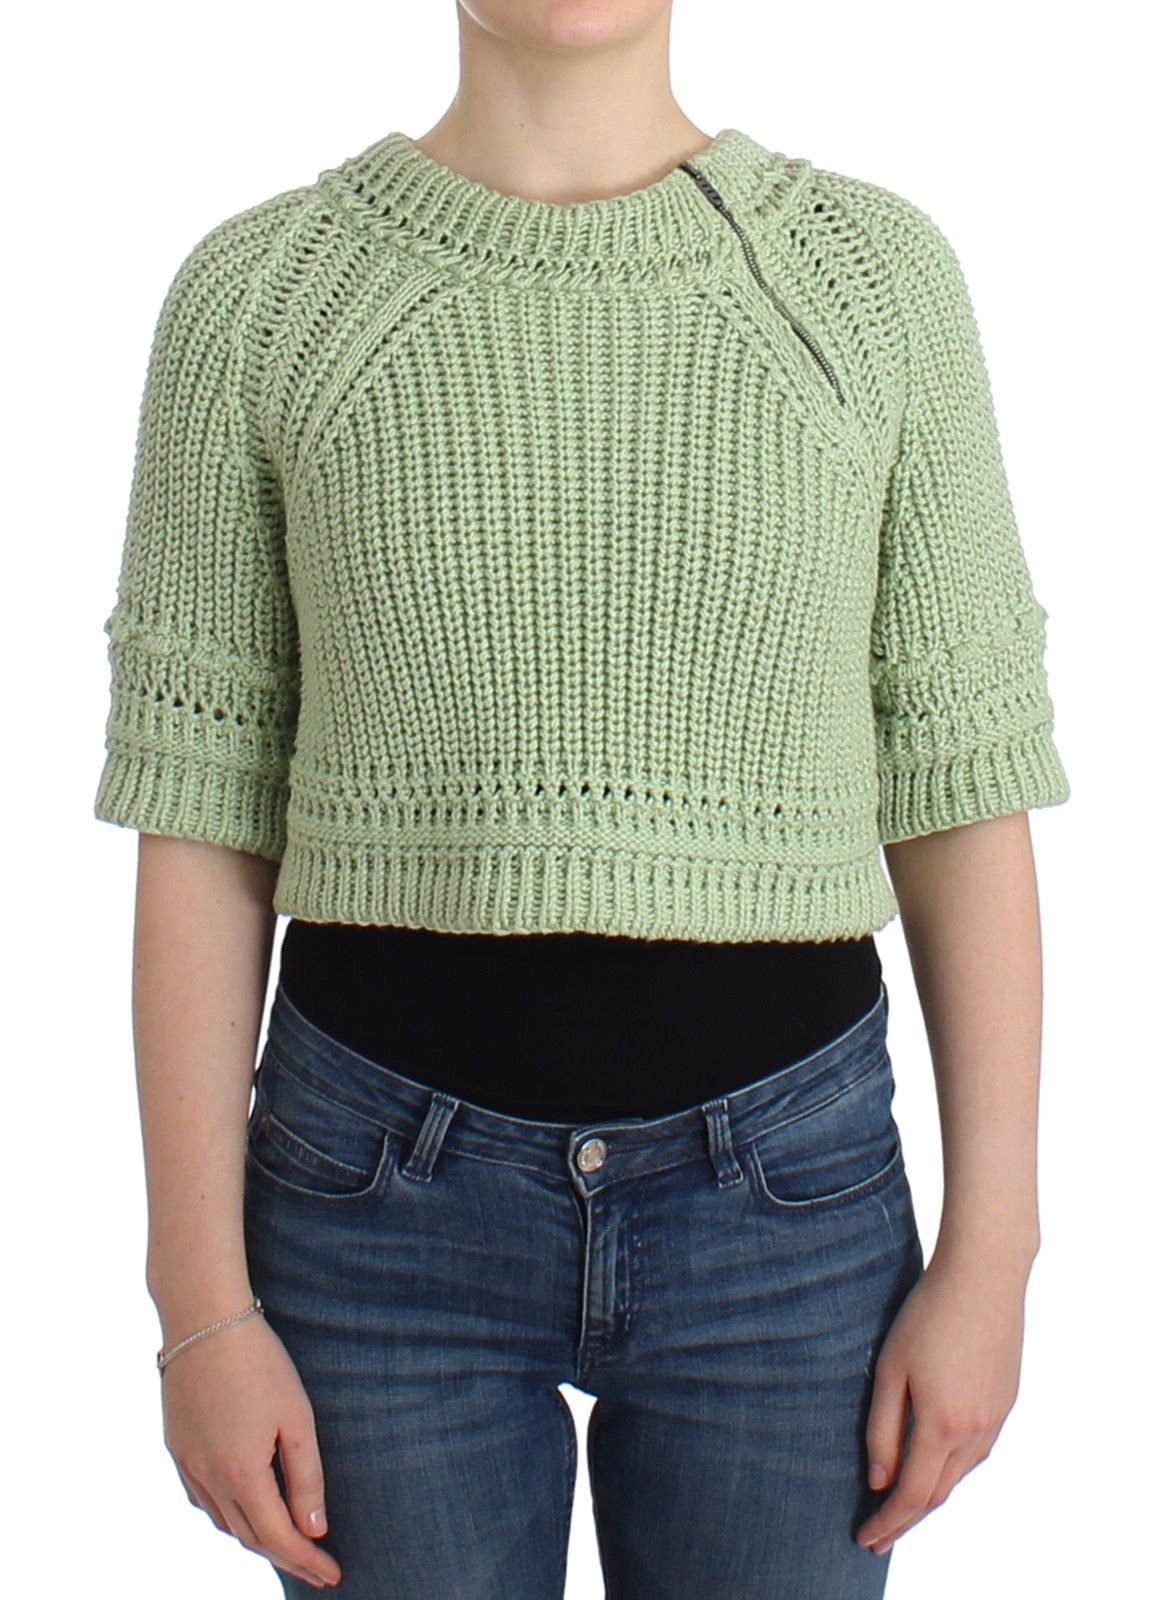 Ermanno Scervino Women's Cropped Knit Sweater Green SIG11857 - IT42   S